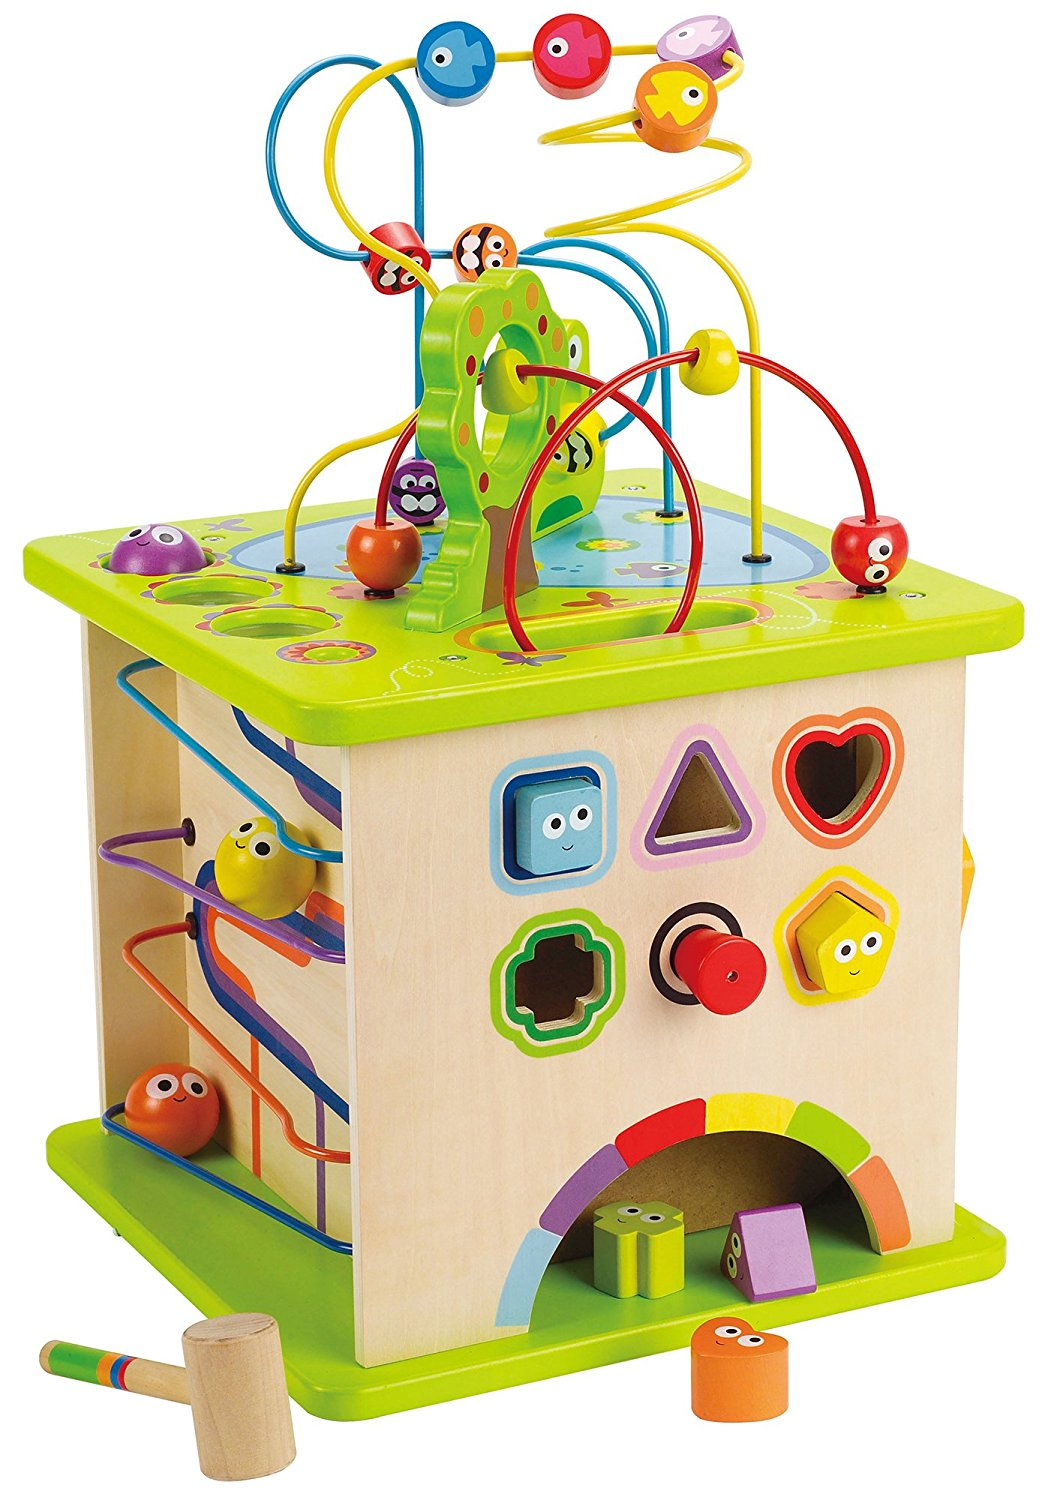 Hape Country Critters Activity Cube